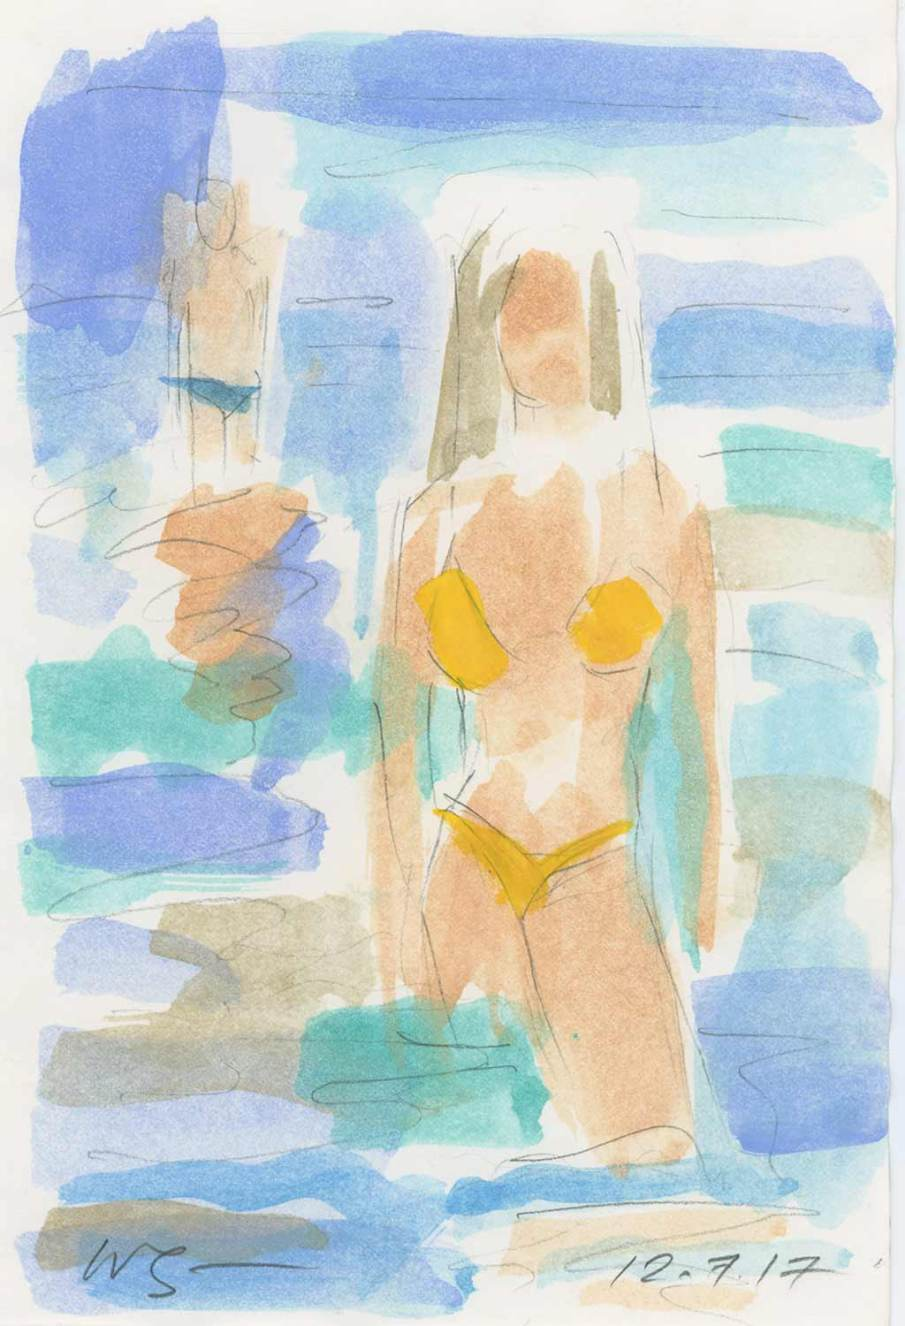 2 Bathers, watercolor on paper, 8 X 5.5, 2017